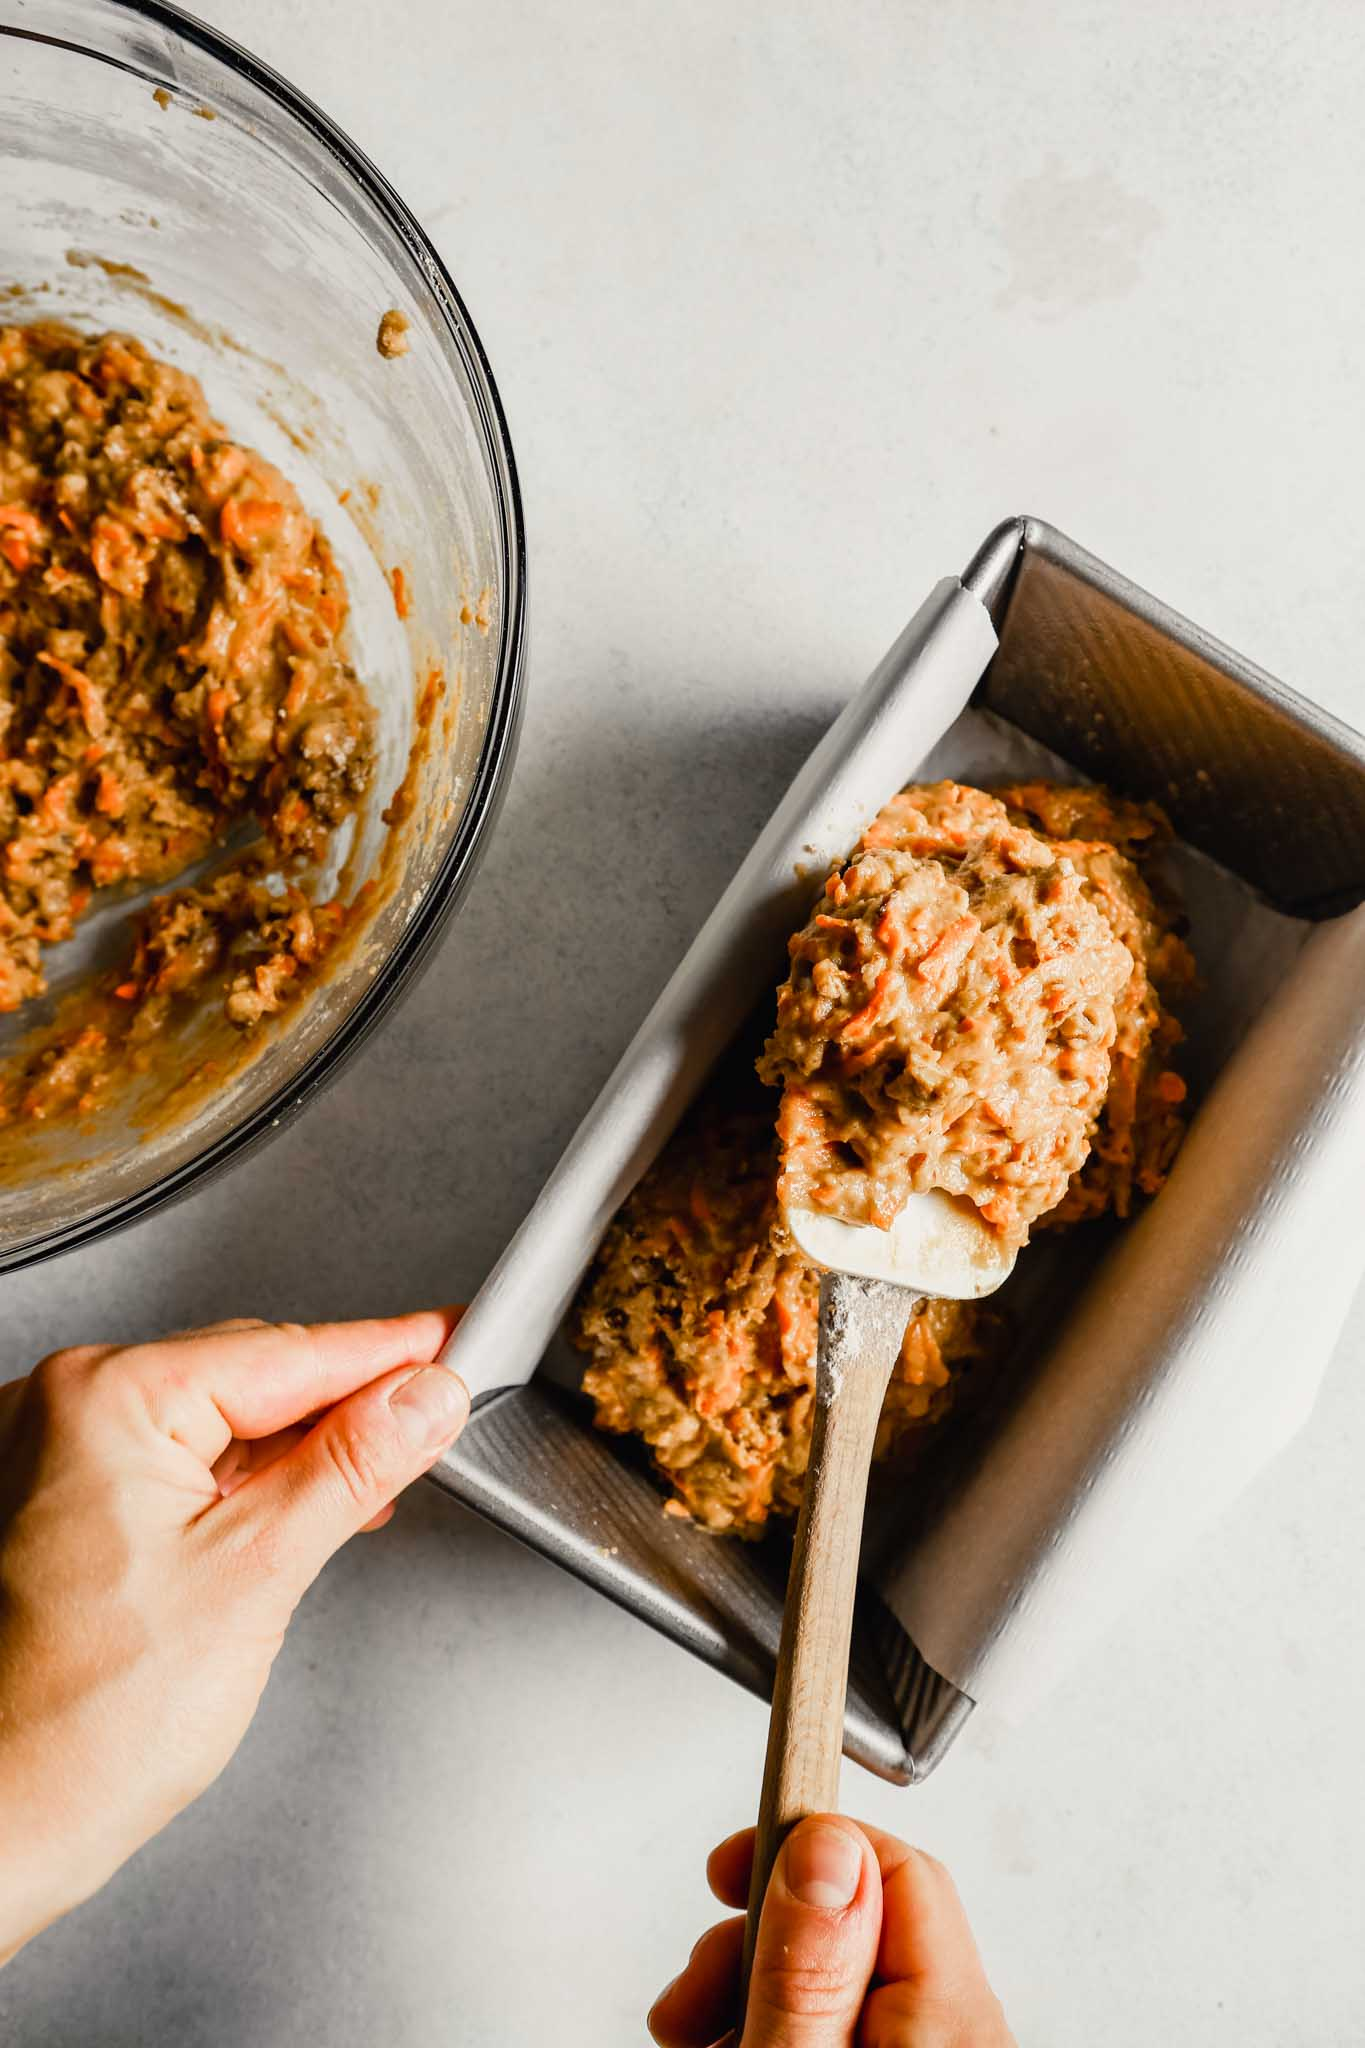 Photograph of carrot bread batter being spooned into a loaf pan